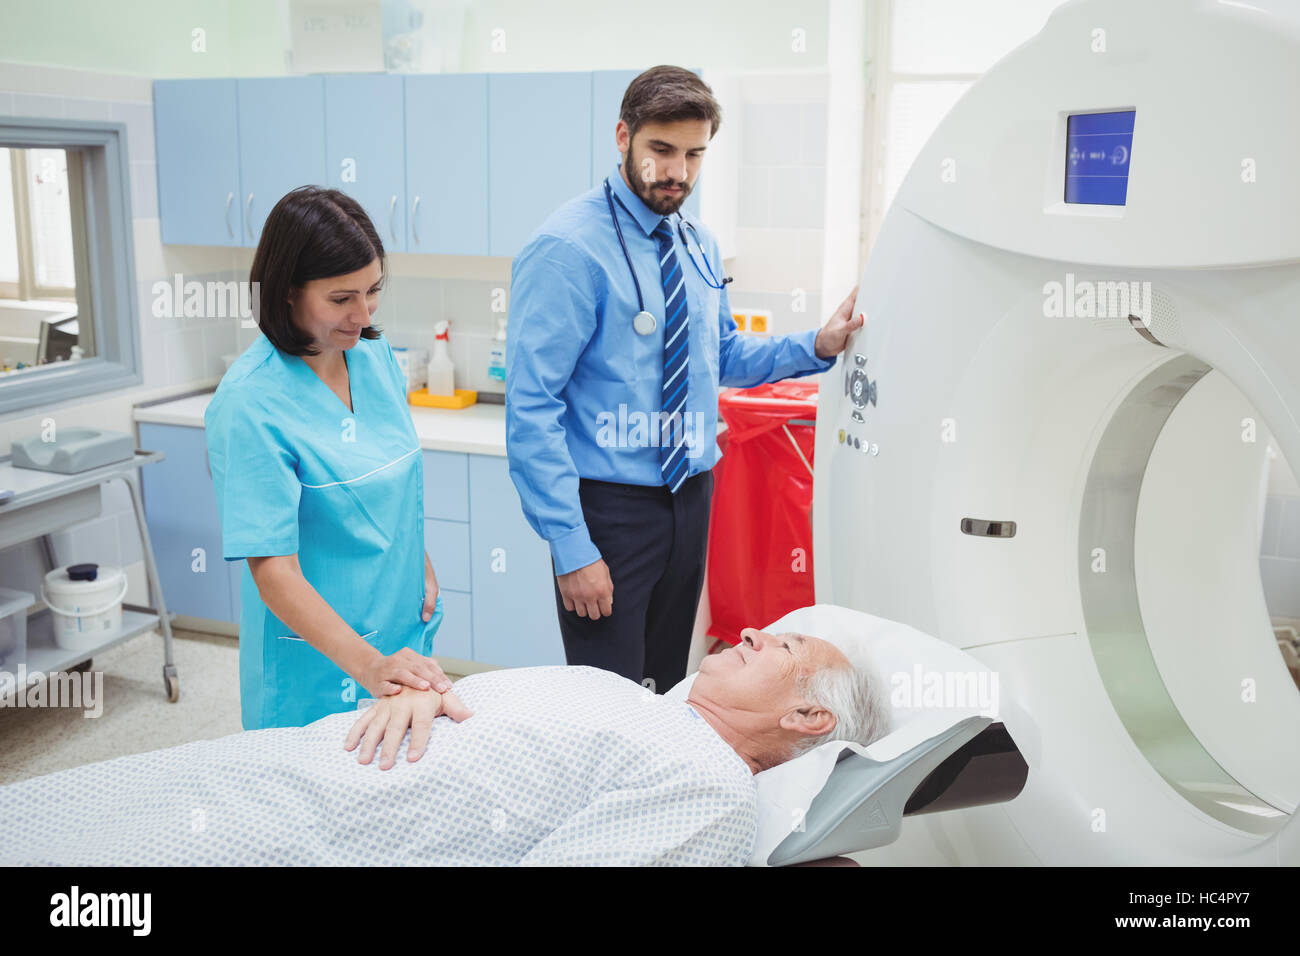 A patient is loaded into an mri machine while doctor and technician watching - Stock Image